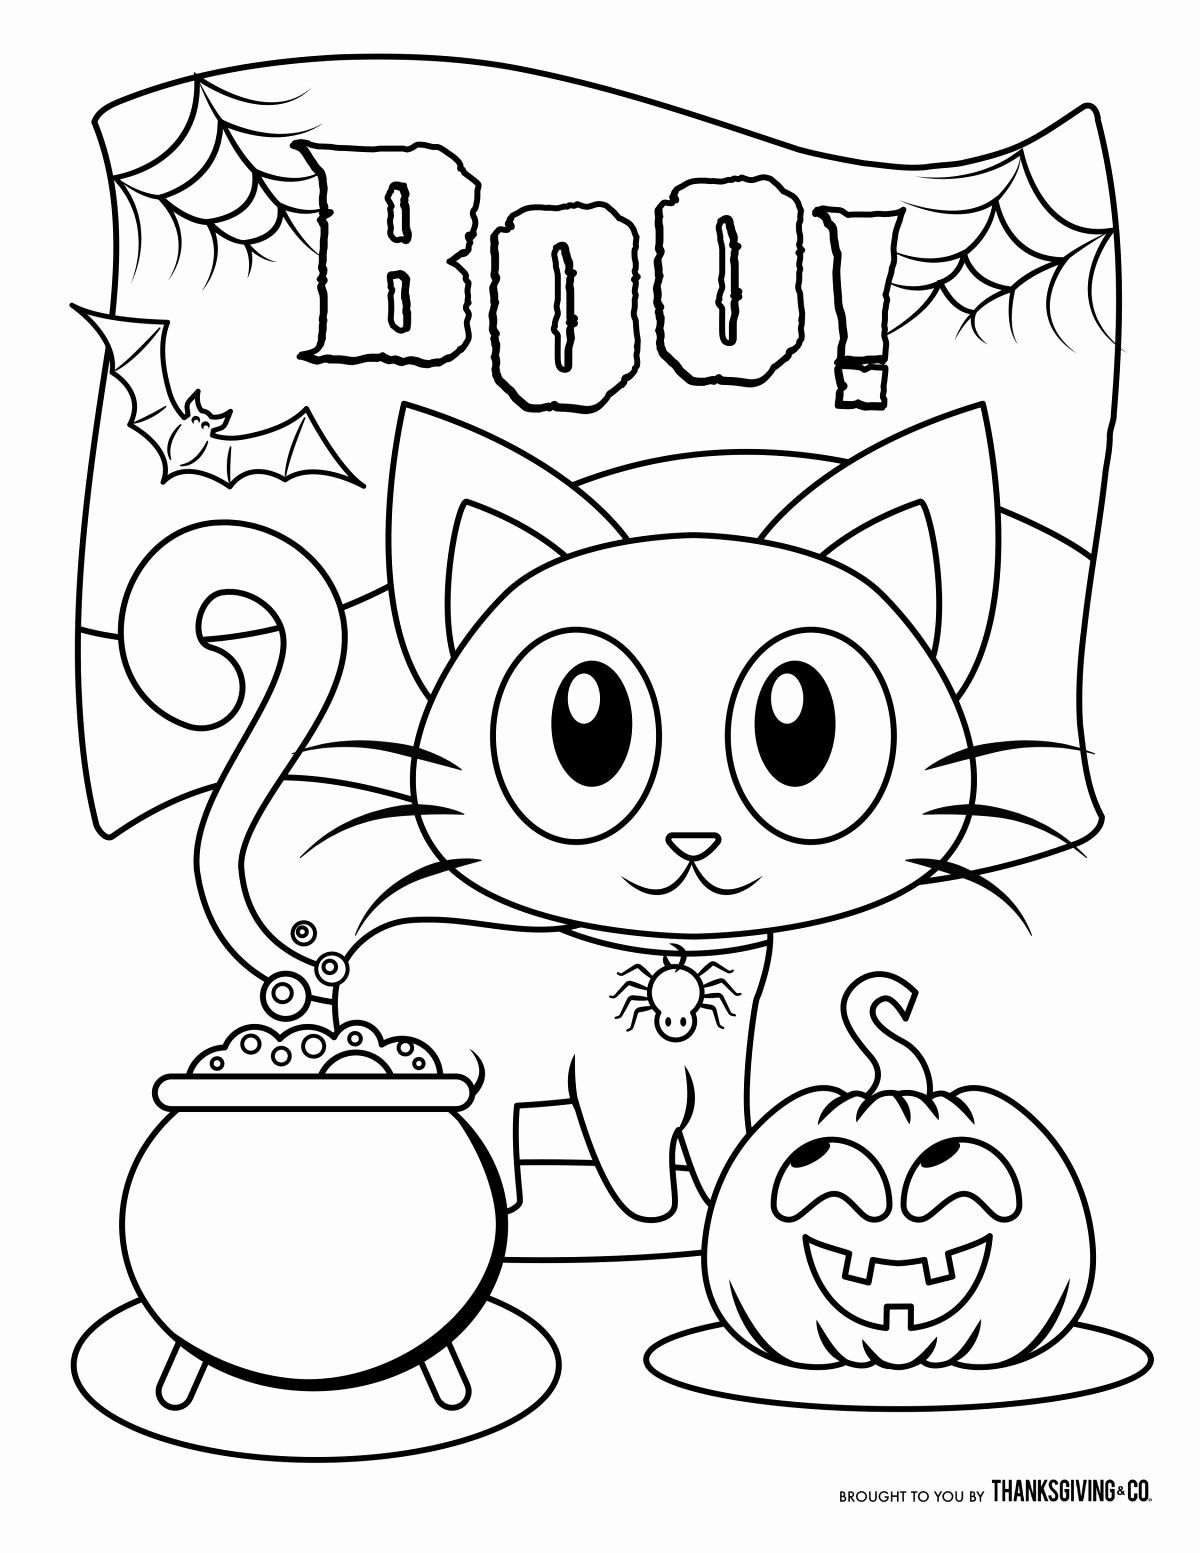 Disney Halloween Coloring Sheets New Coloring Pages Astonishing Kids Ha Free Halloween Coloring Pages Halloween Coloring Pages Printable Monster Coloring Pages [ jpg ]